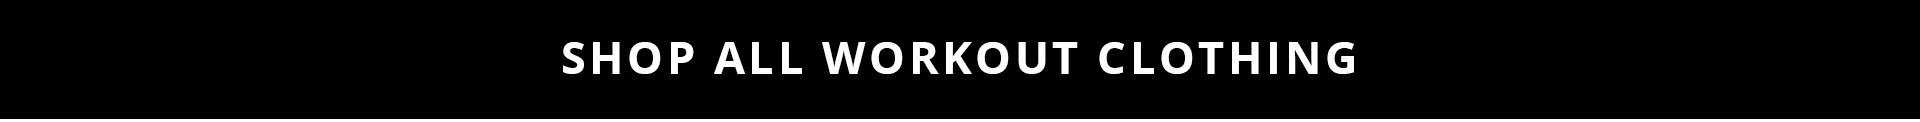 Shop All Workout Clothing